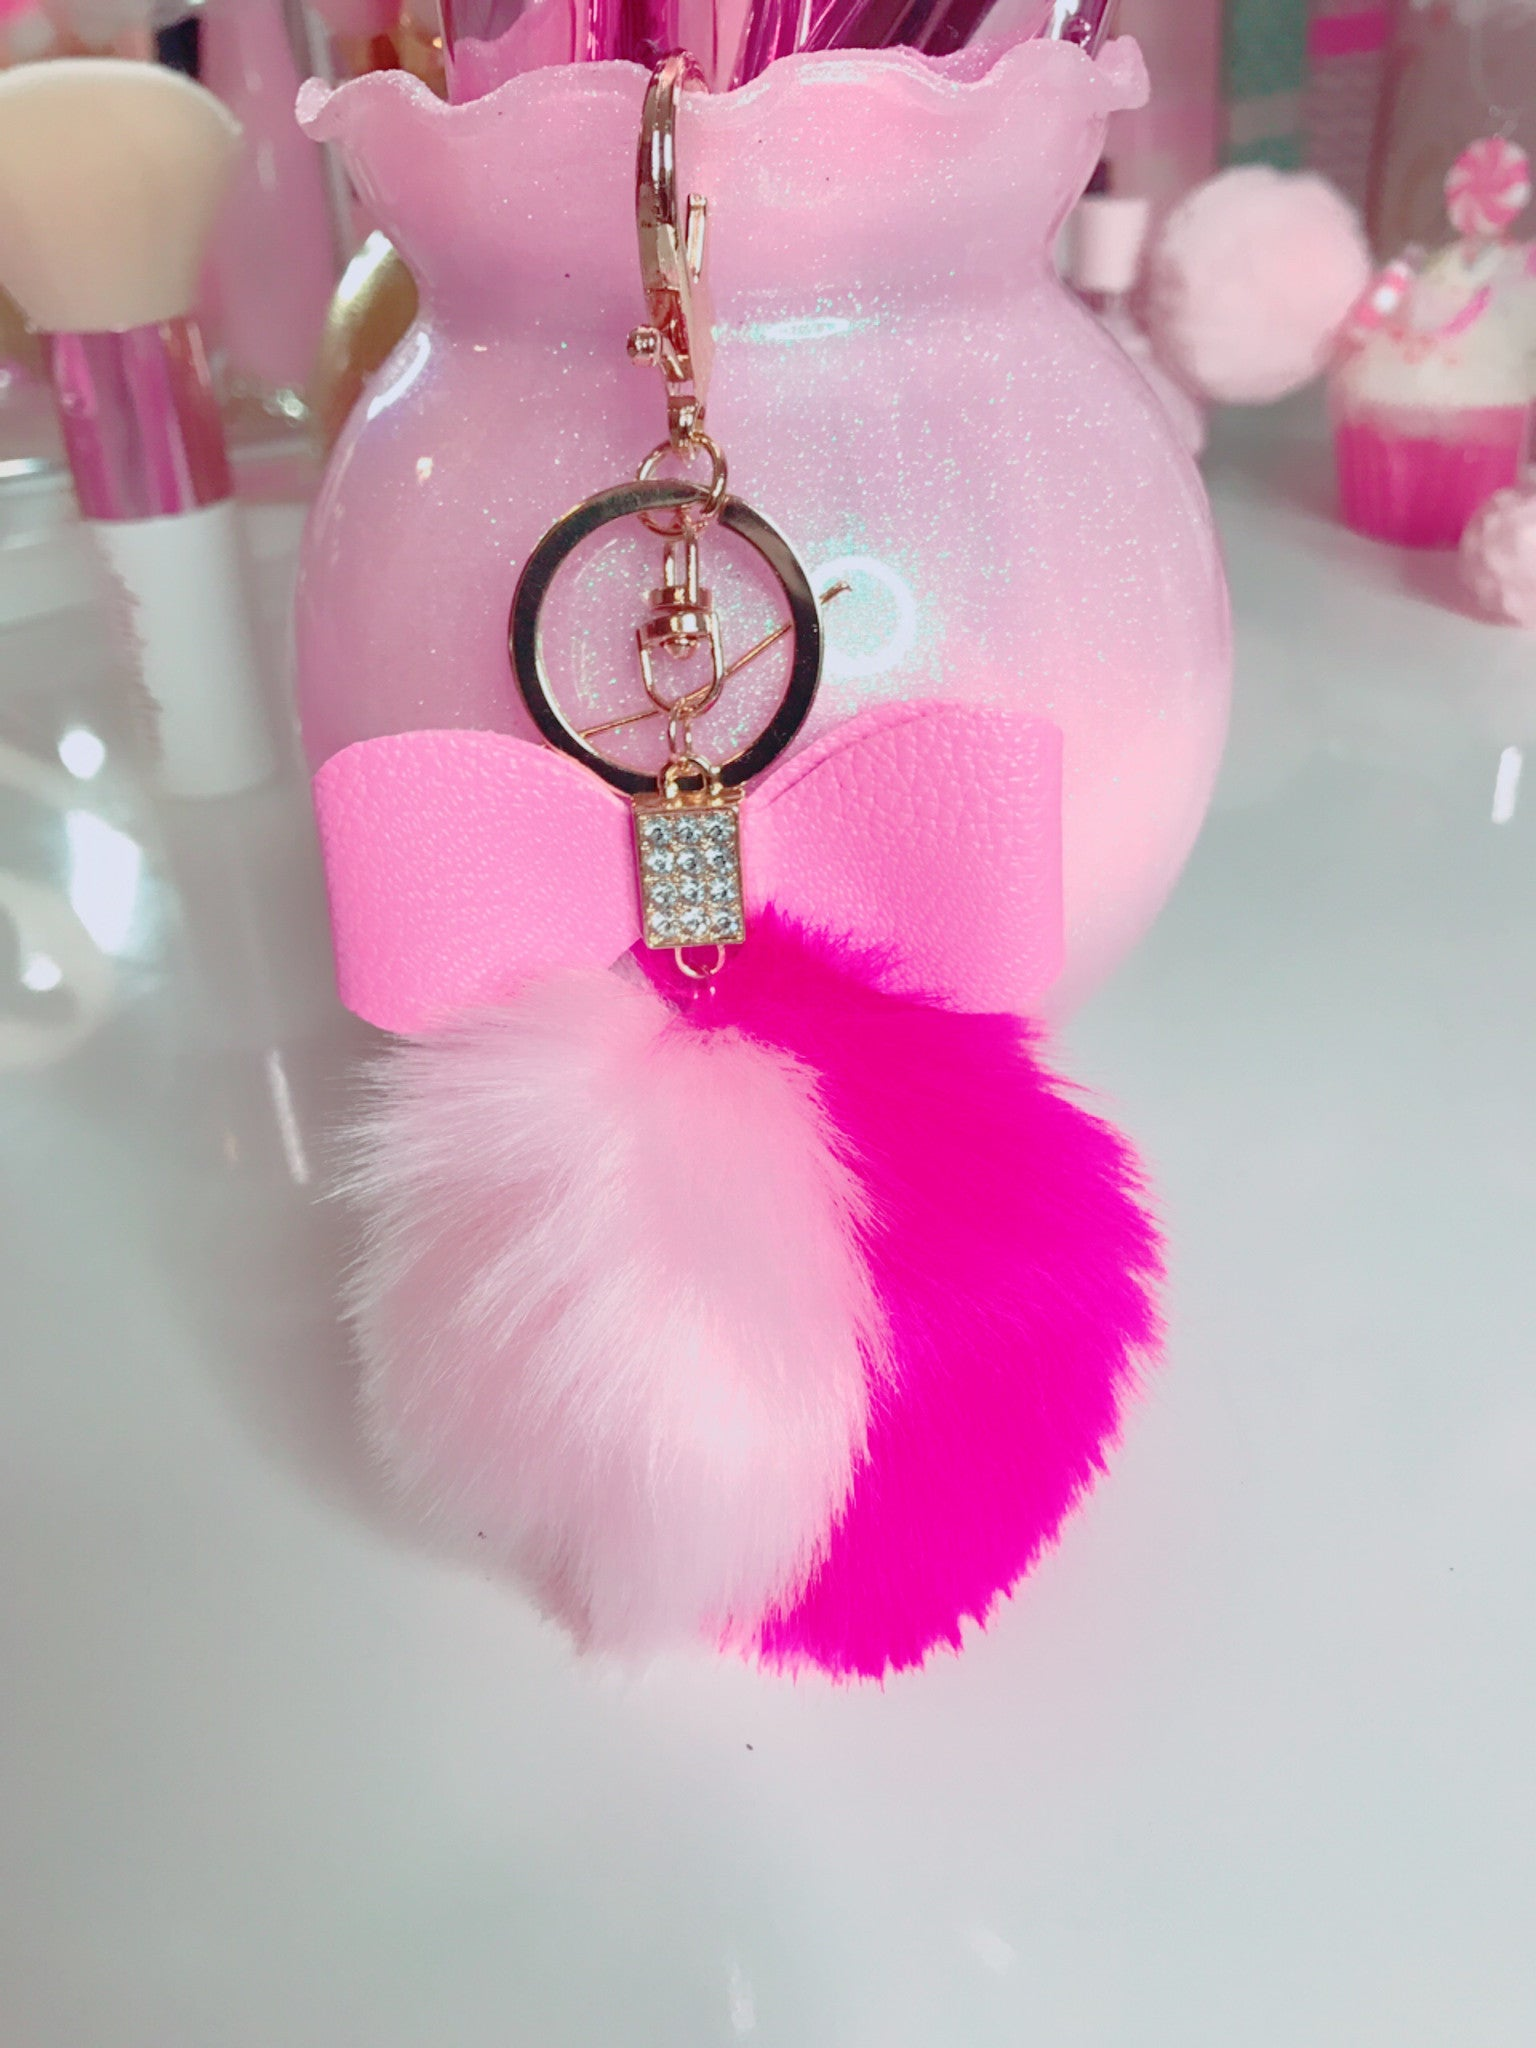 Two color bow pom pom bag charm keychain